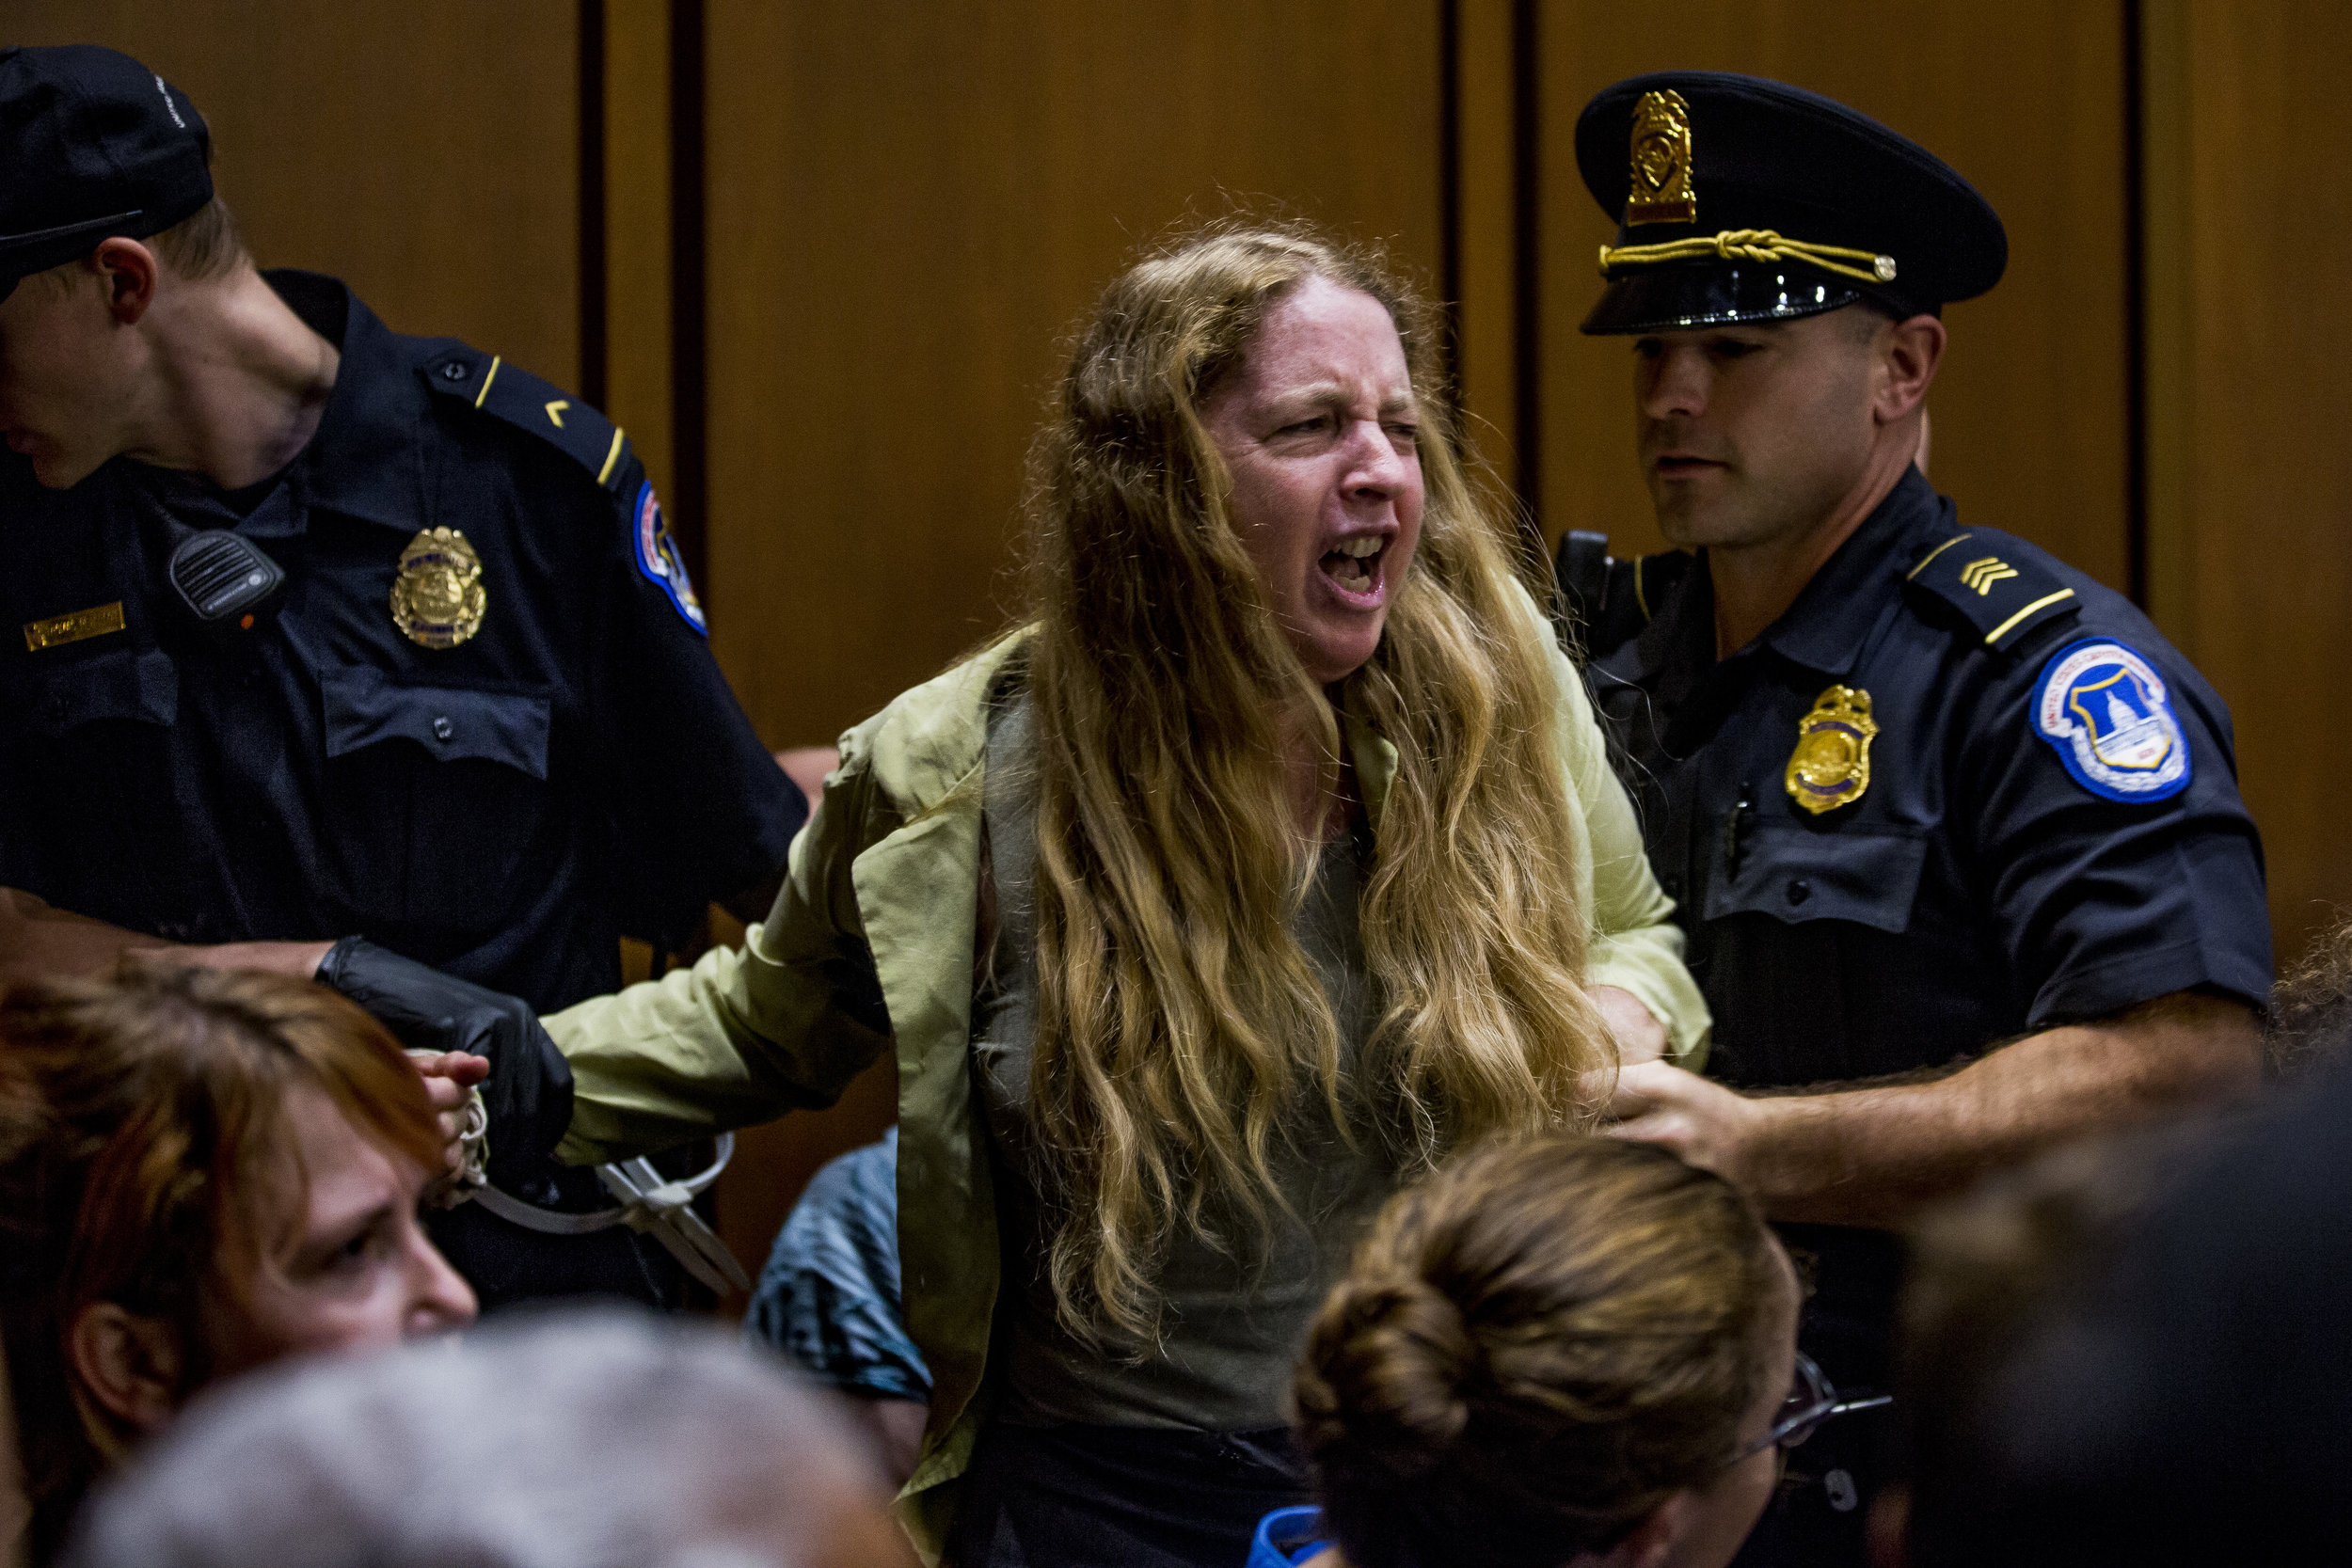 Protestors are removed from Senate Judiciary Committee hearing on September 4th, 2018